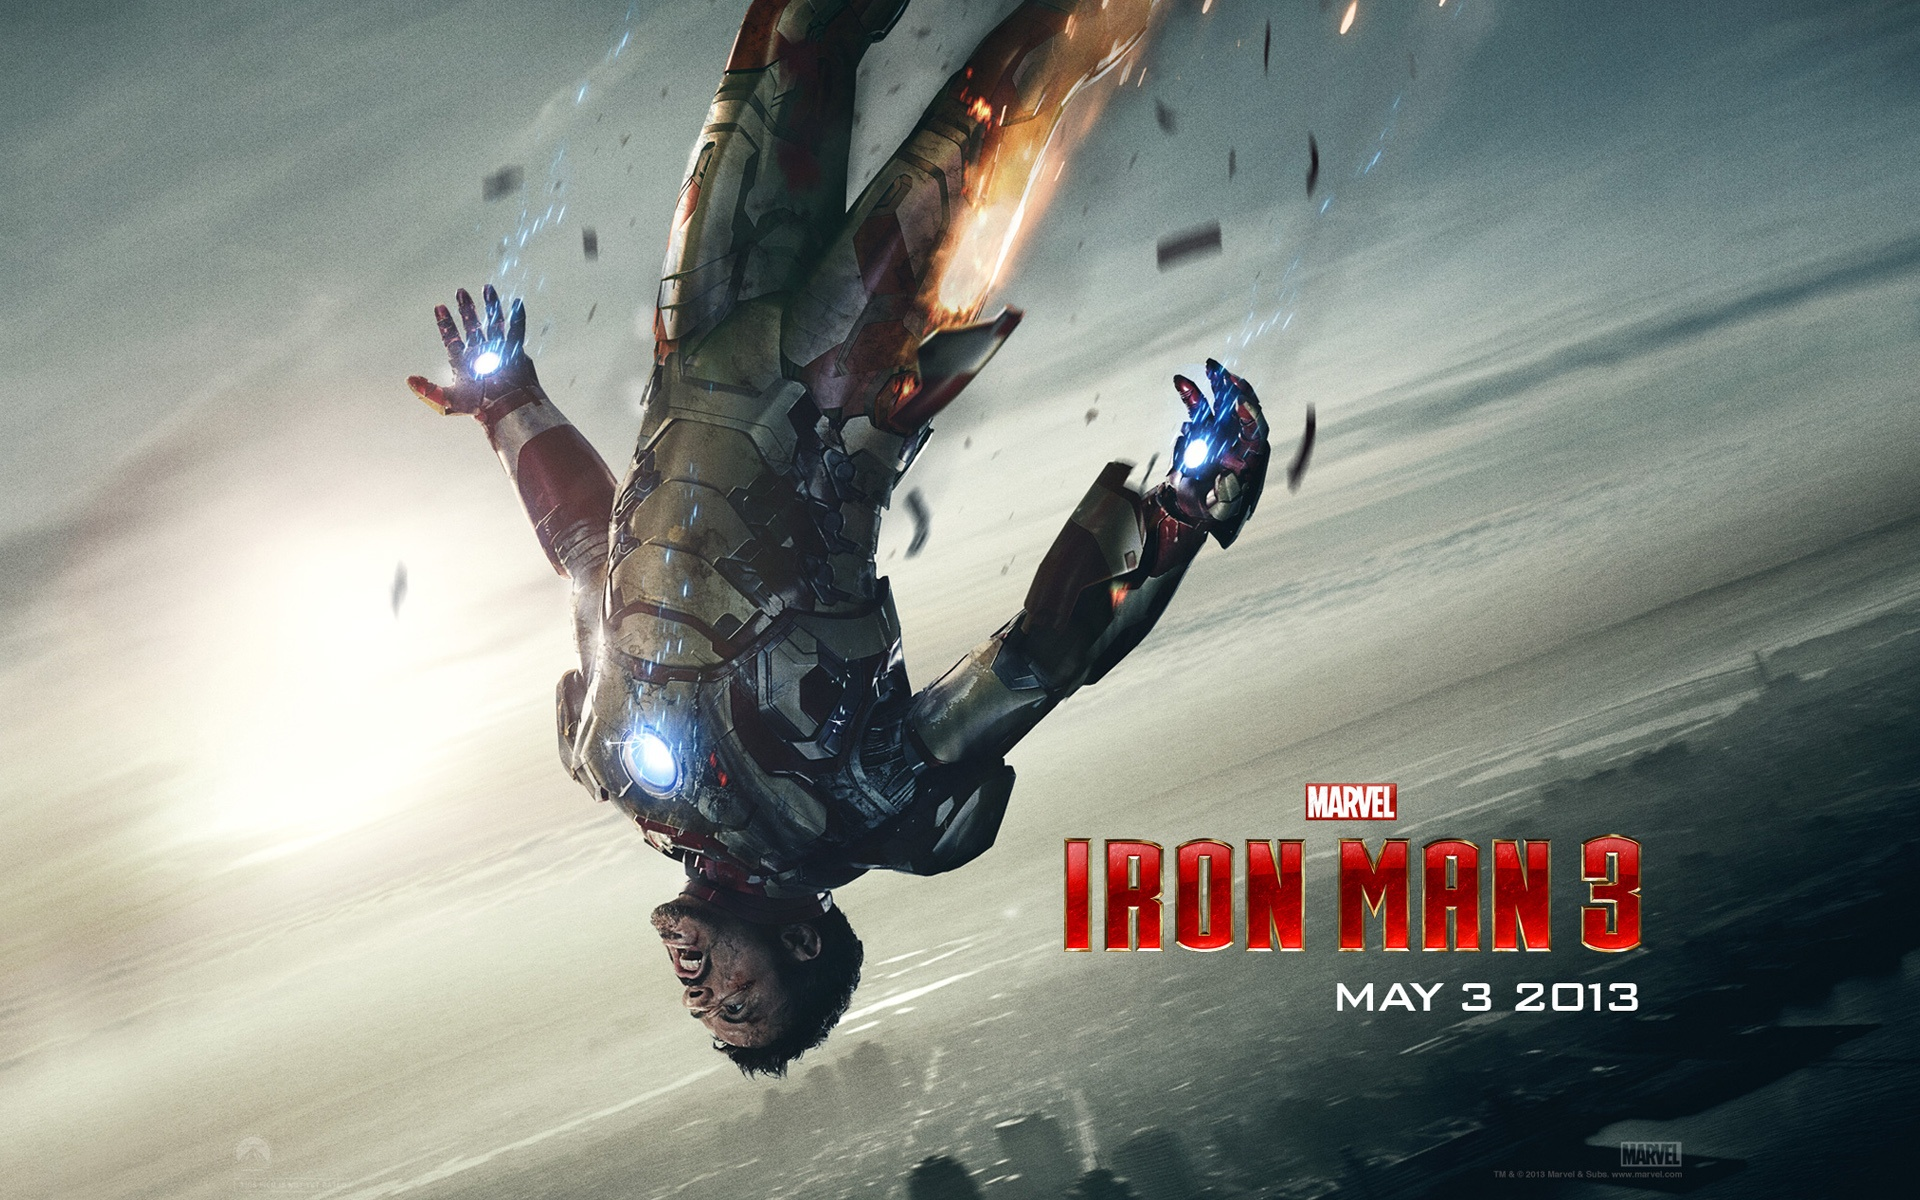 tony stark in iron man 3 wallpapers in jpg format for free download